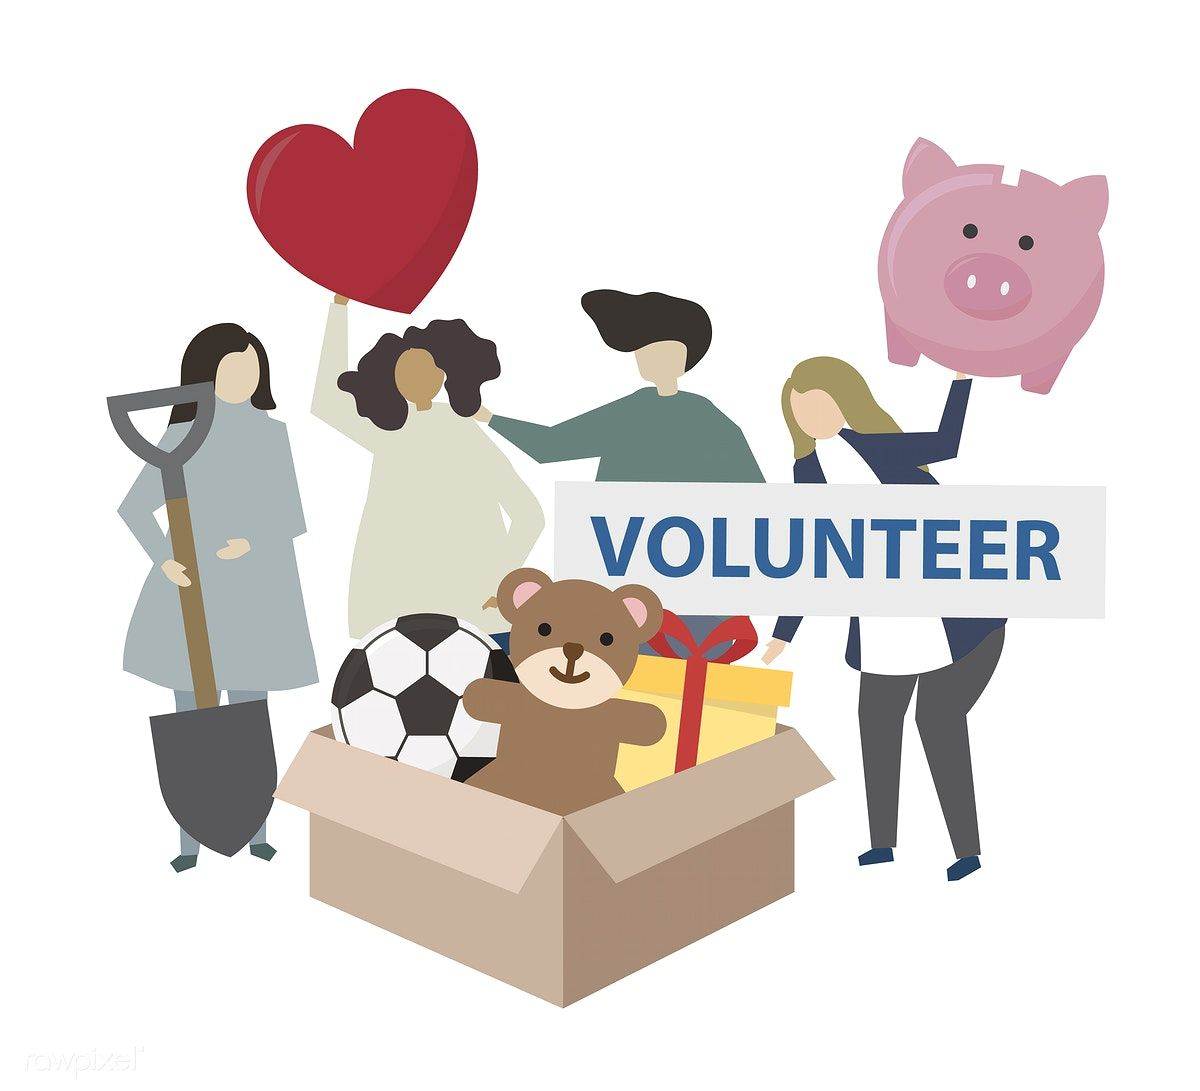 Download Premium Vector Of Donation And Volunteering Community Service Community Service Volunteer Best Iphone Wallpapers